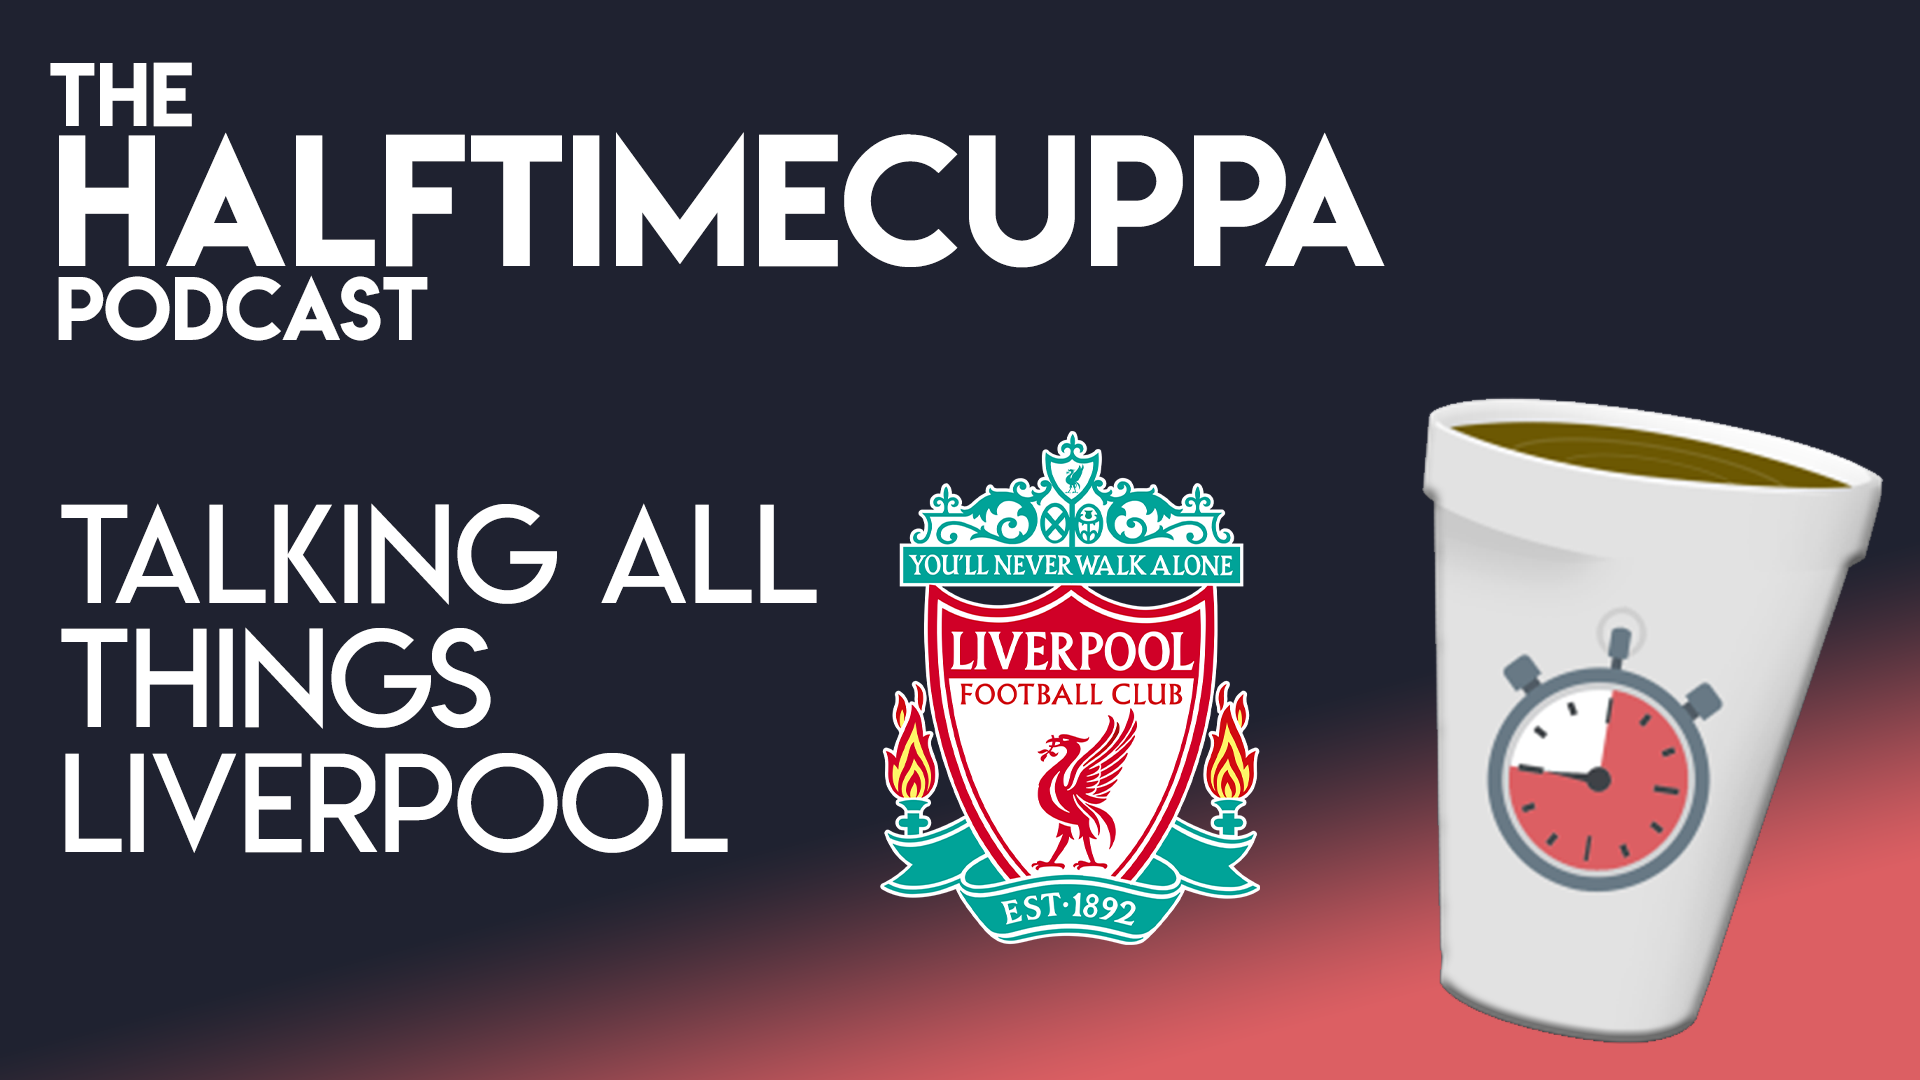 The Half Time Podcast – #38 – Talking all things Liverpool